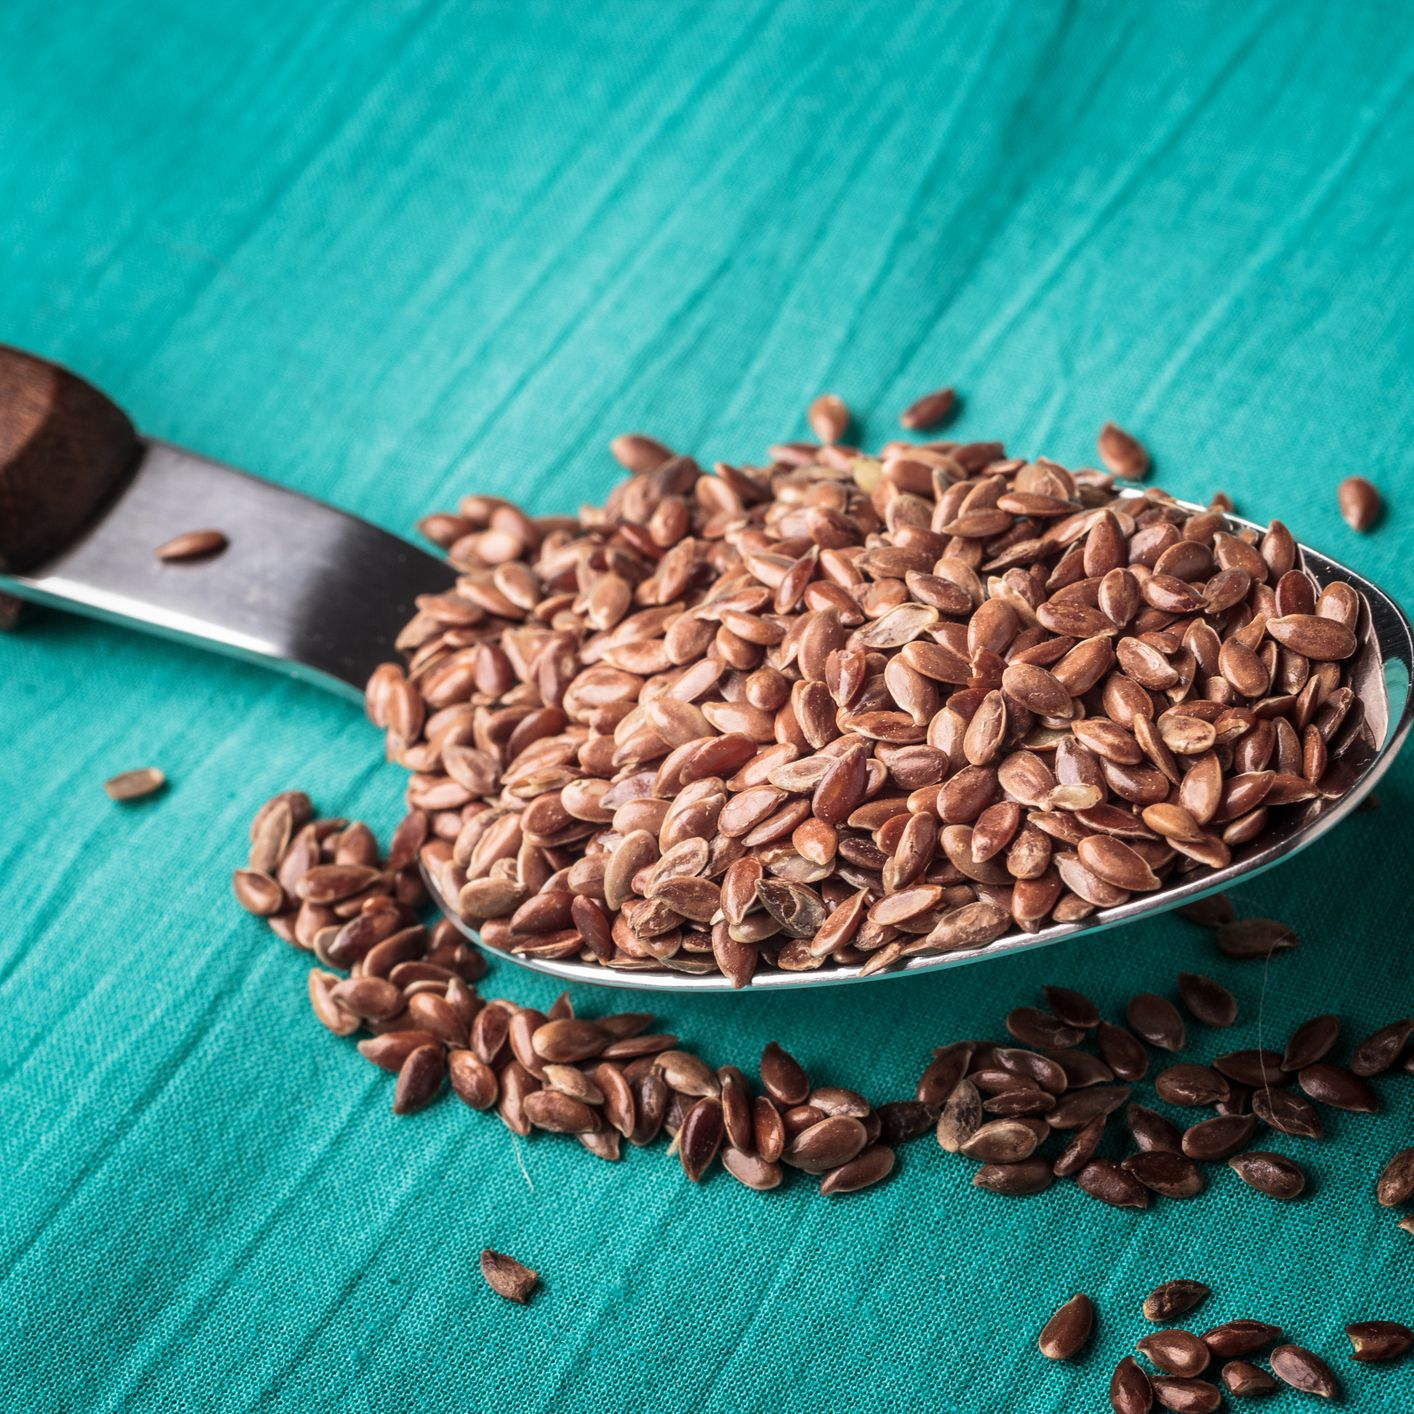 Flaxseed: A Powerful Cancer-Fighting Food